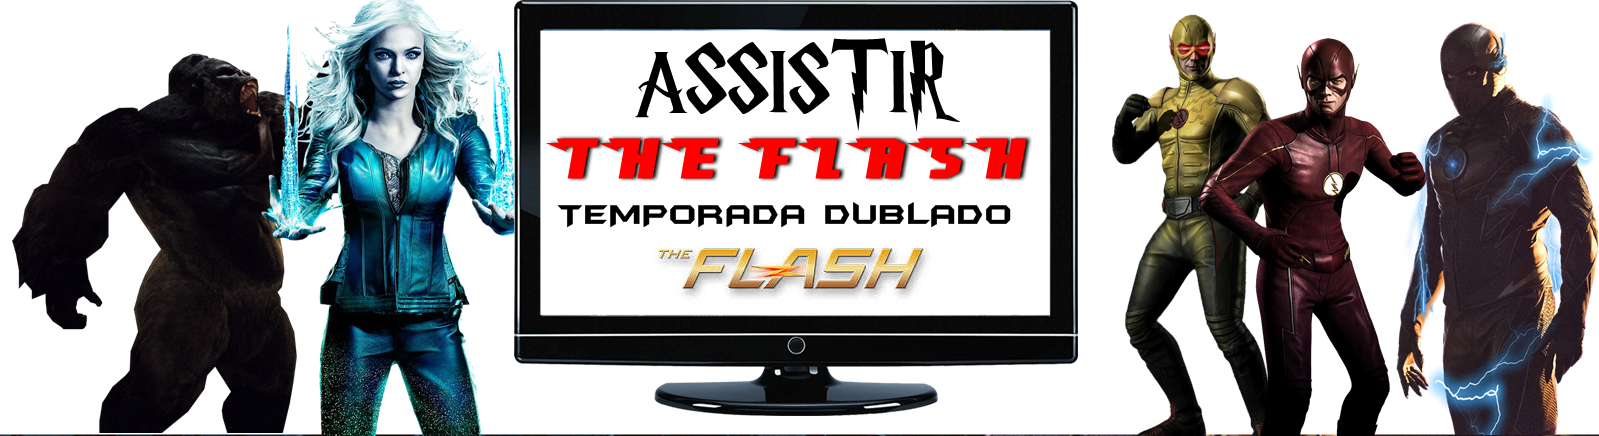 Assistir The Flash HD